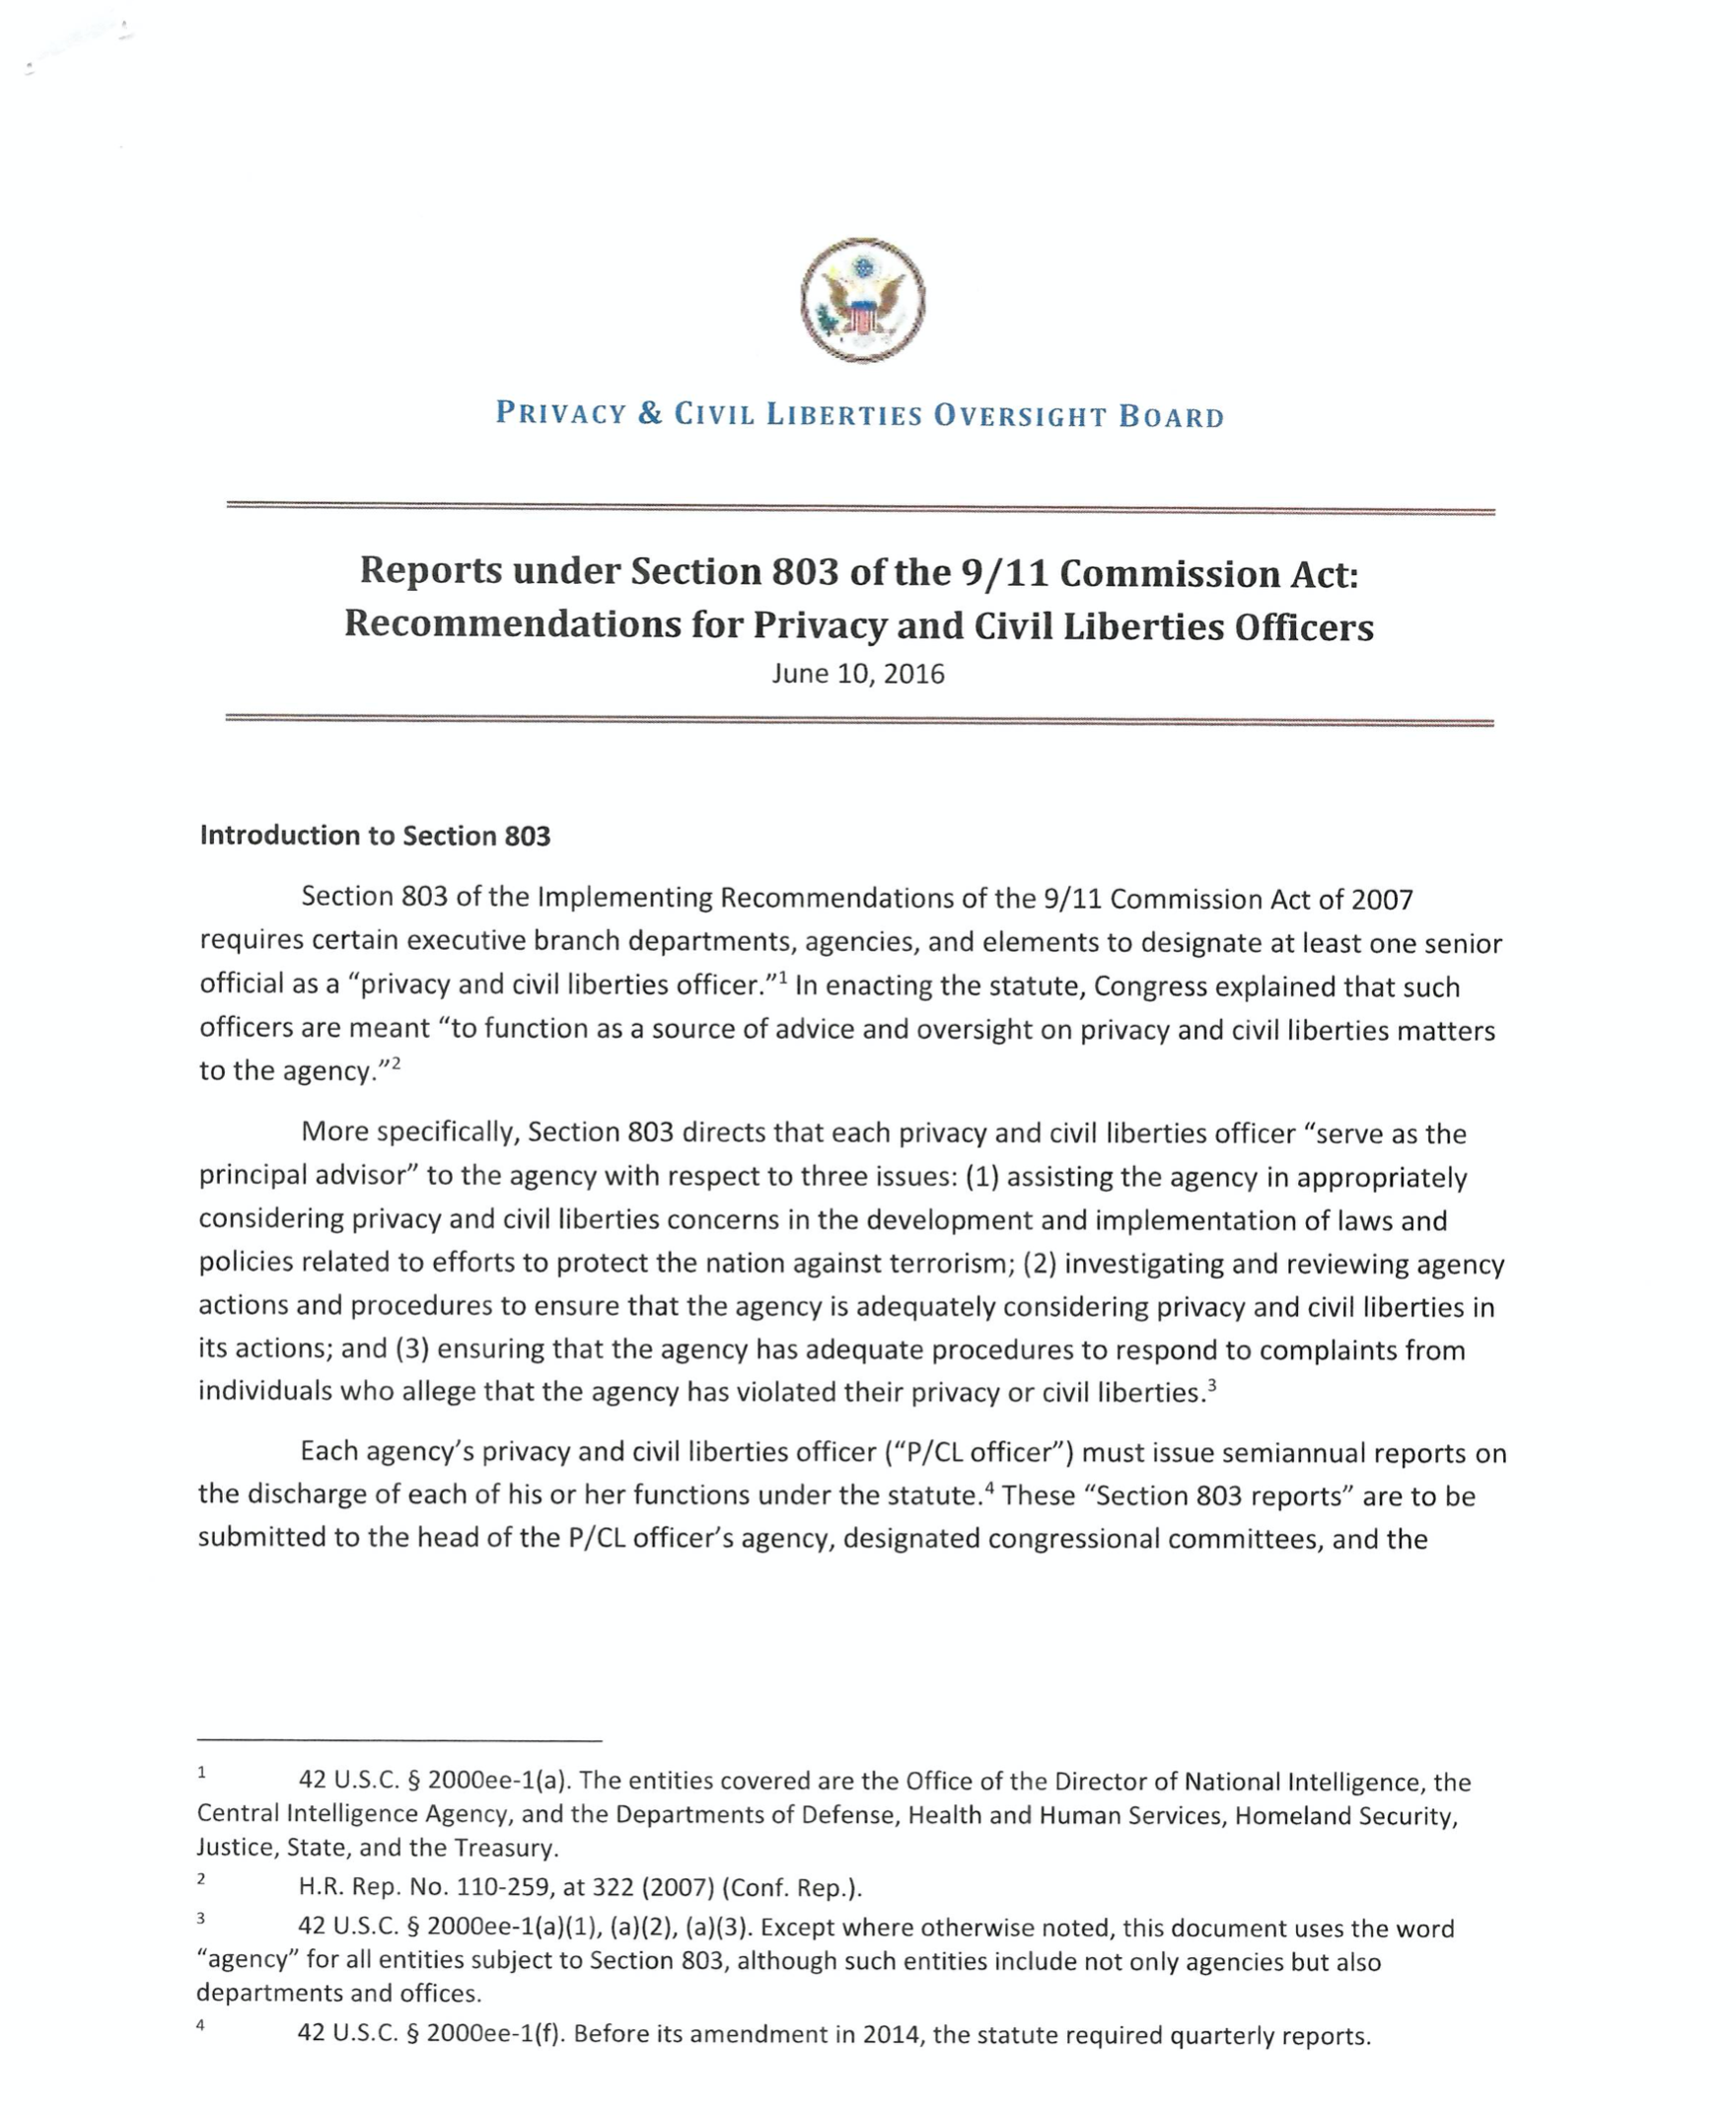 Reports under Section 803 of the 9/11 Commission Act